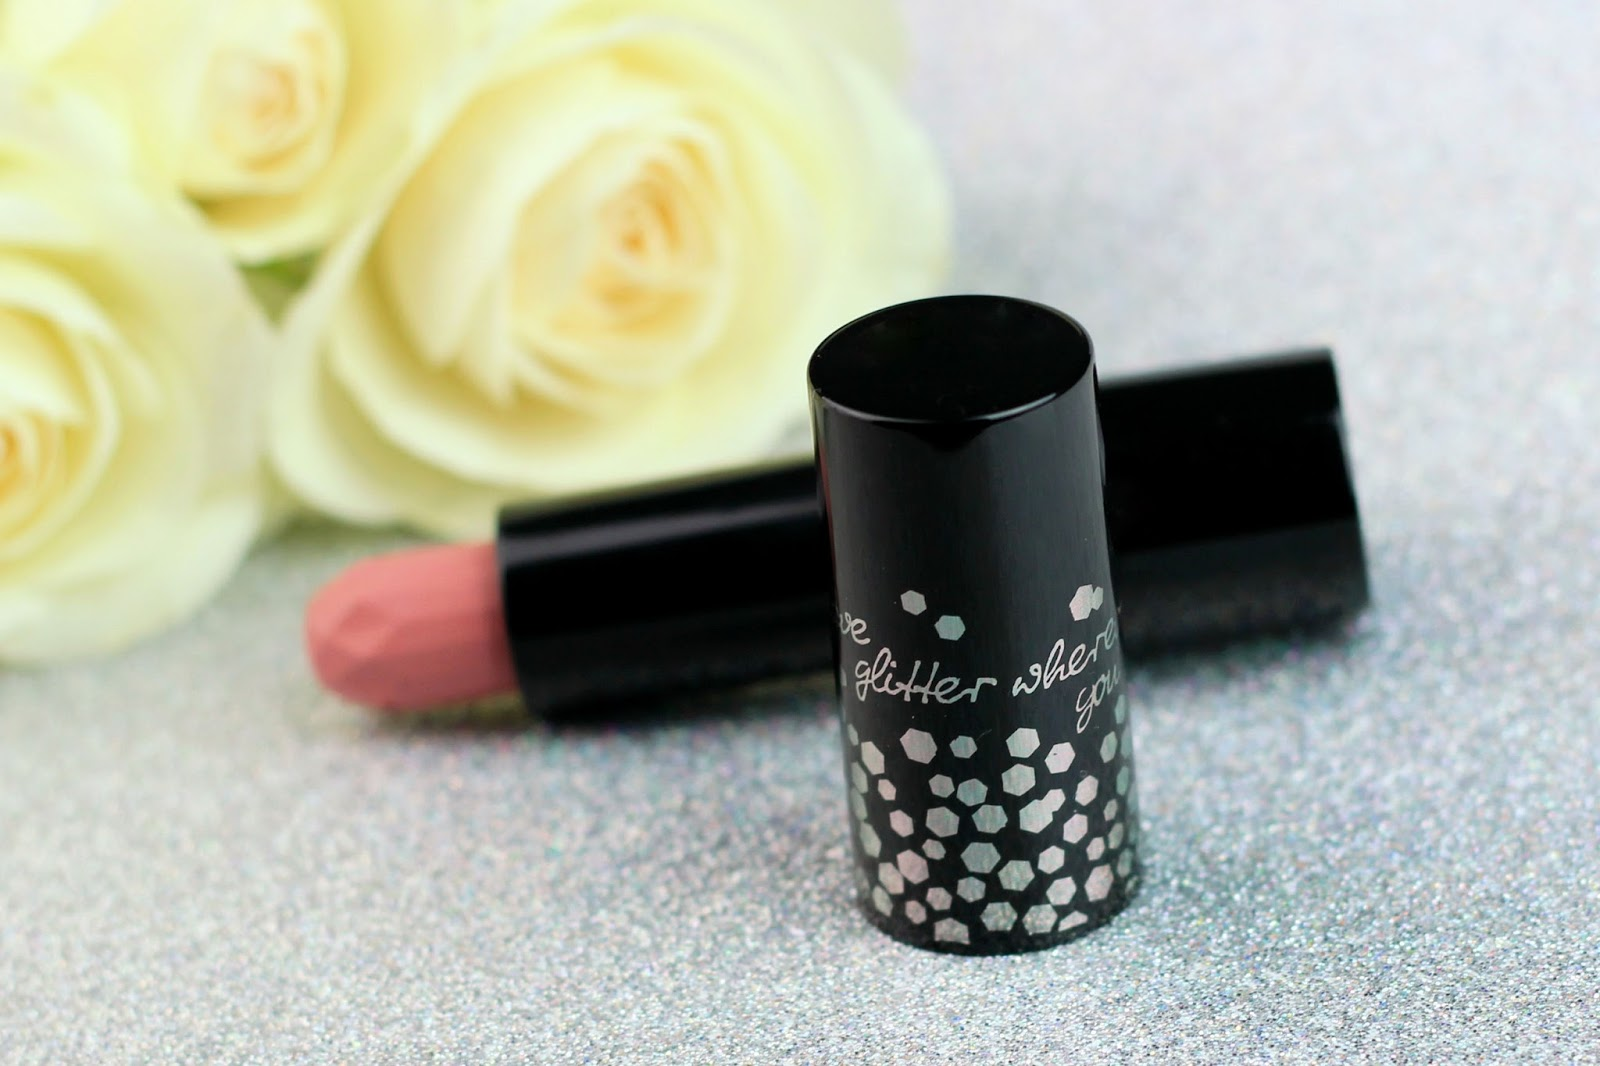 blush, essence, eyeliner, glitter in the air, limited edition, lippenstift, metallic eyeshadow, nagellack, nailpolish, review, roségold, shimmer drops, smaragdgrün, swatches, tragebilder, velvet lipstick,